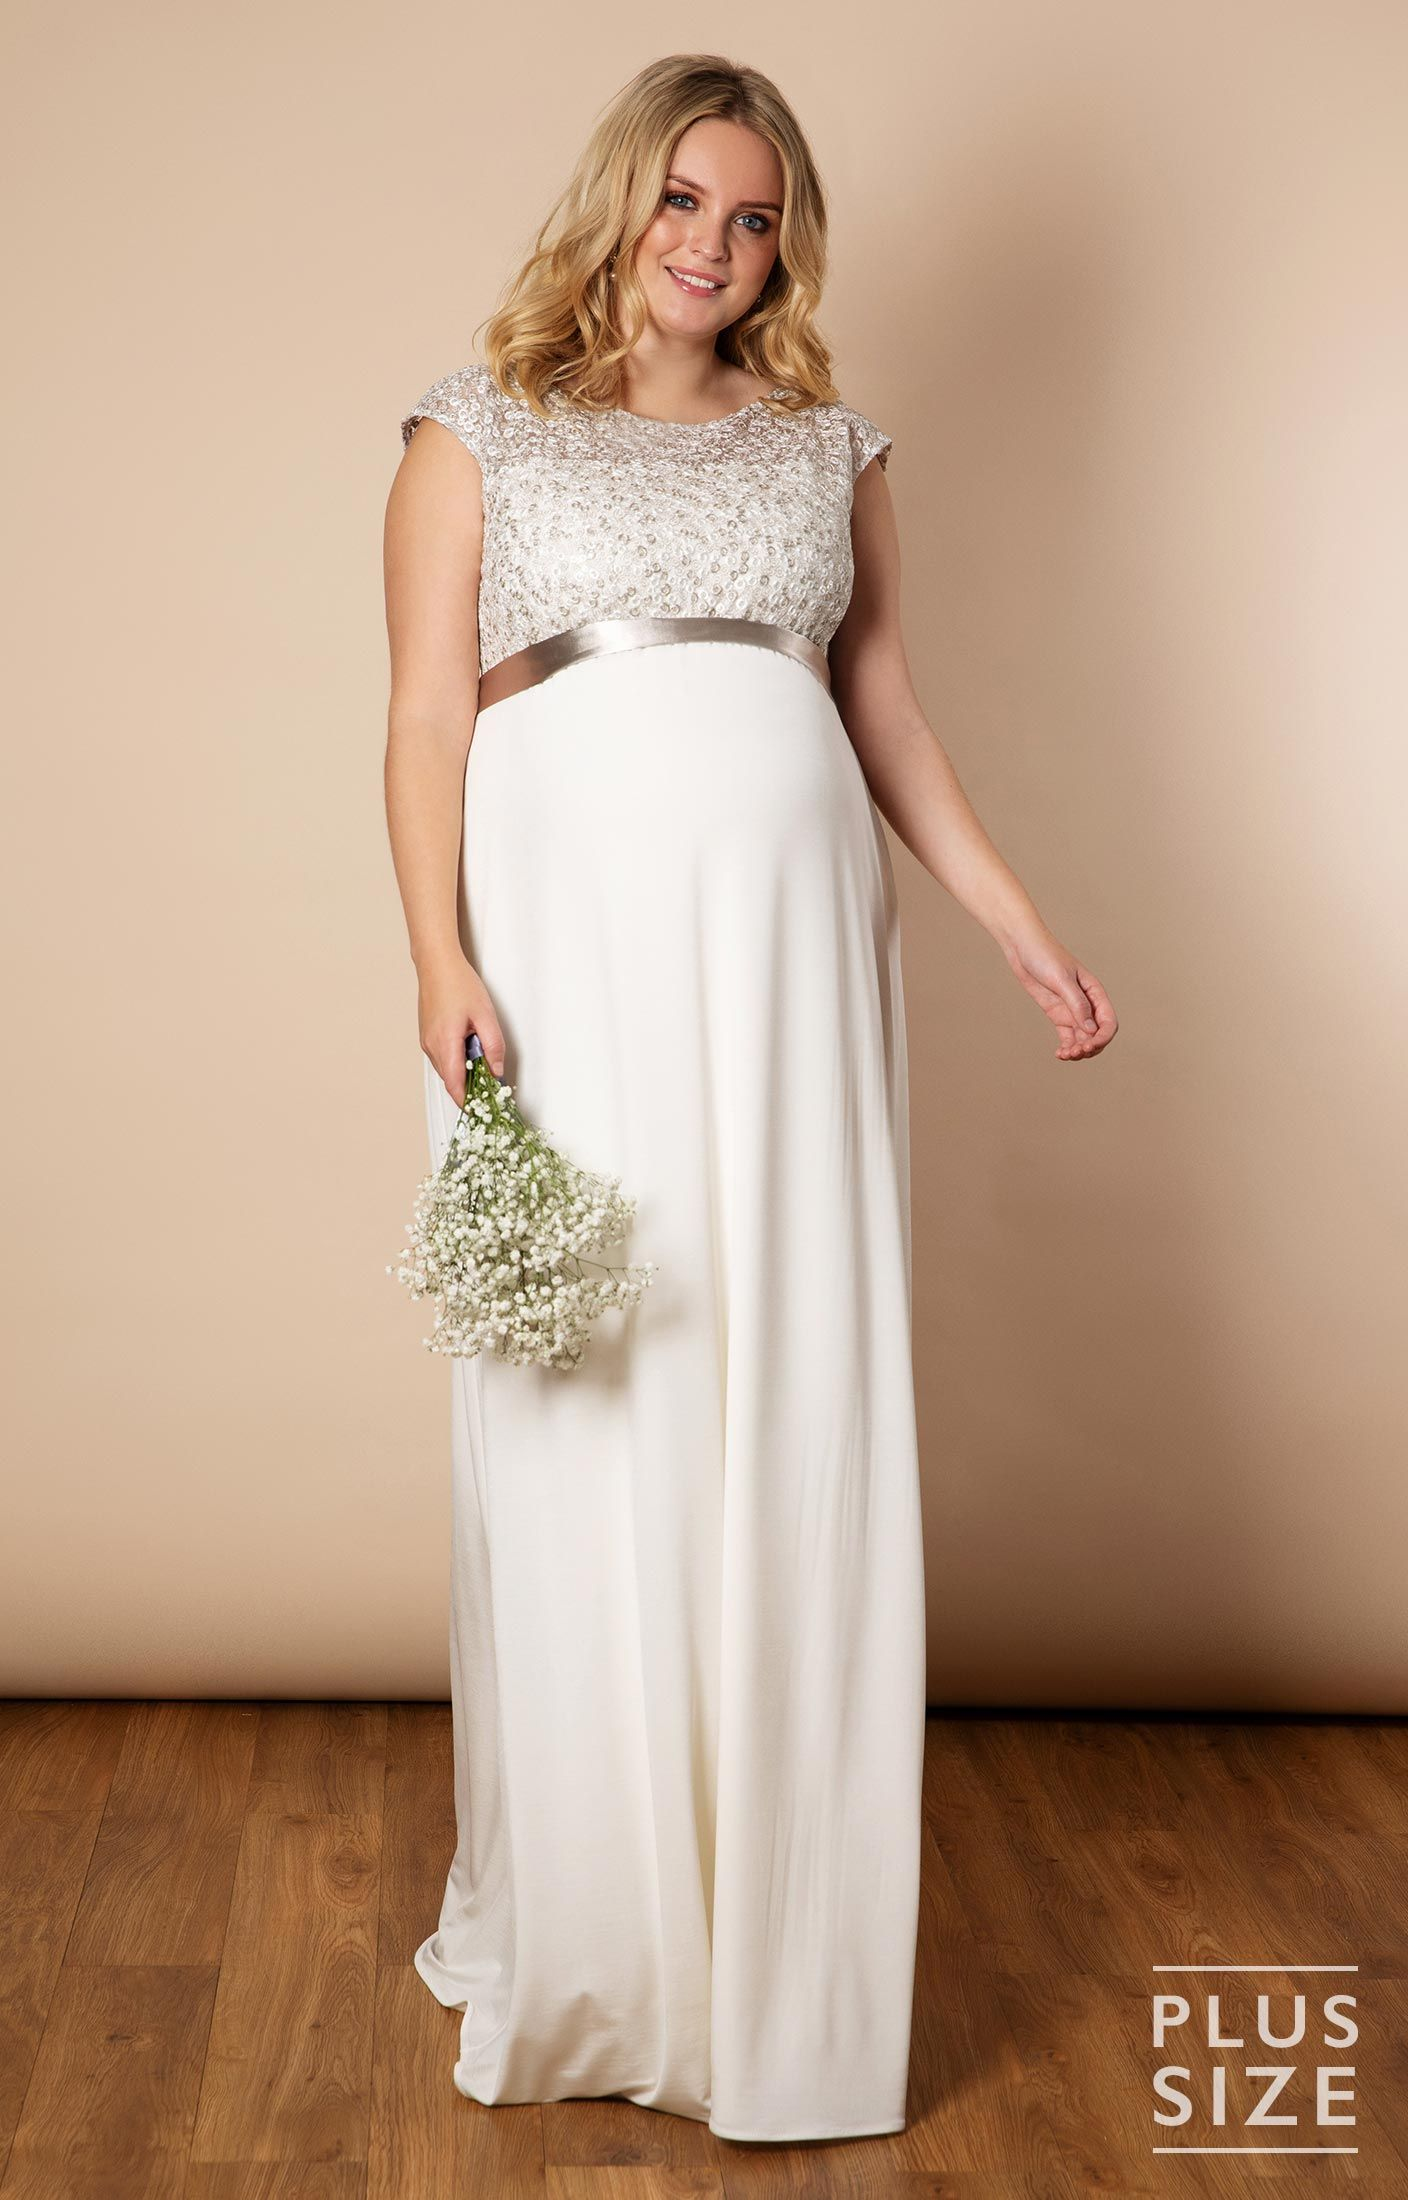 Mia Plus Size Maternity Wedding Gown in Ivory - Maternity ...